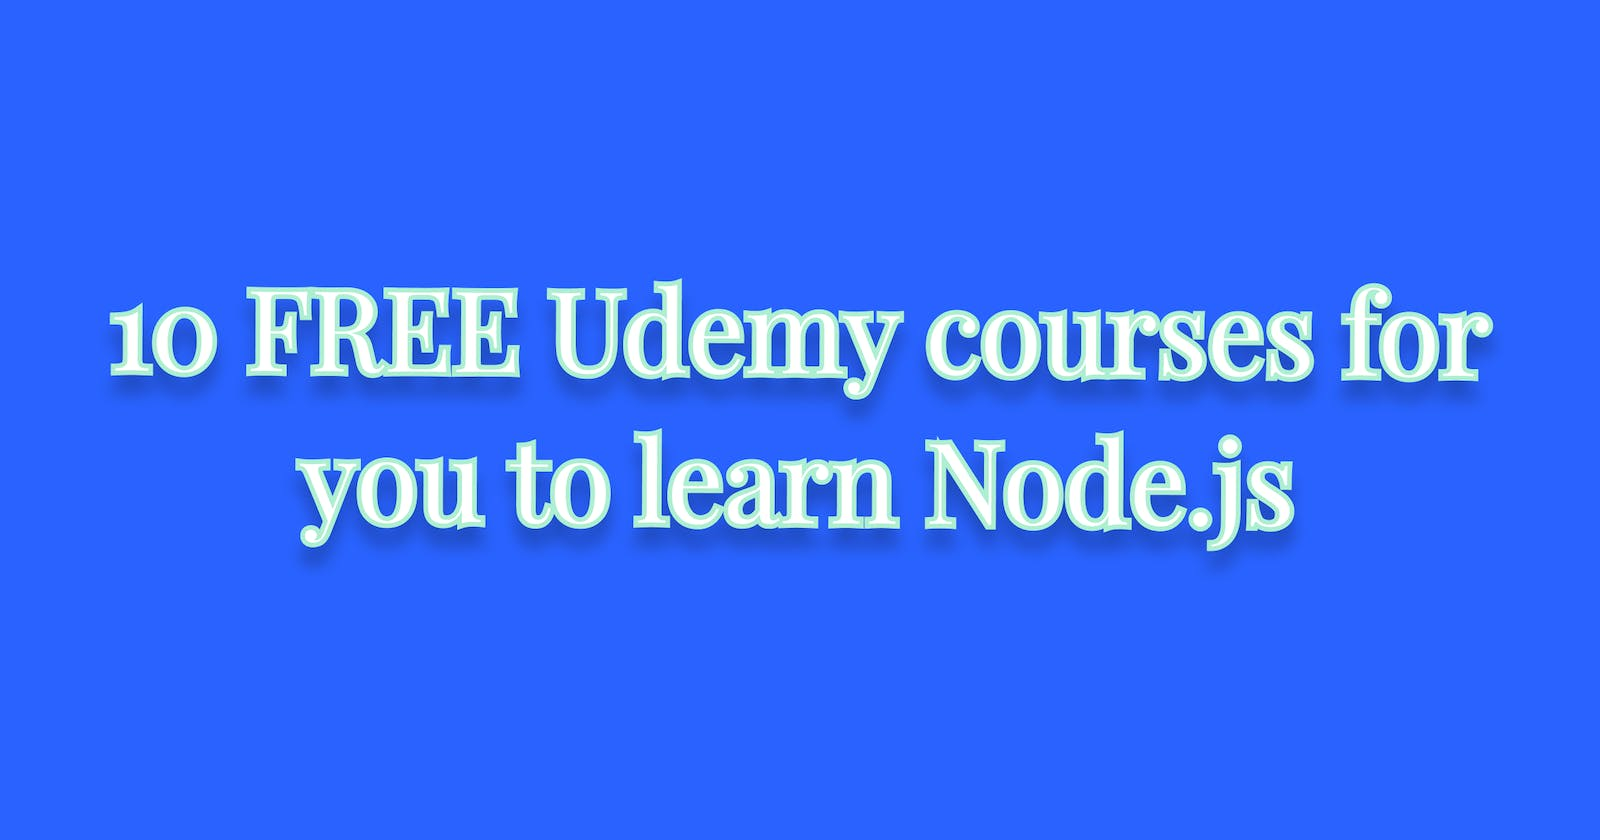 10 FREE Udemy courses for you to learn Node.js